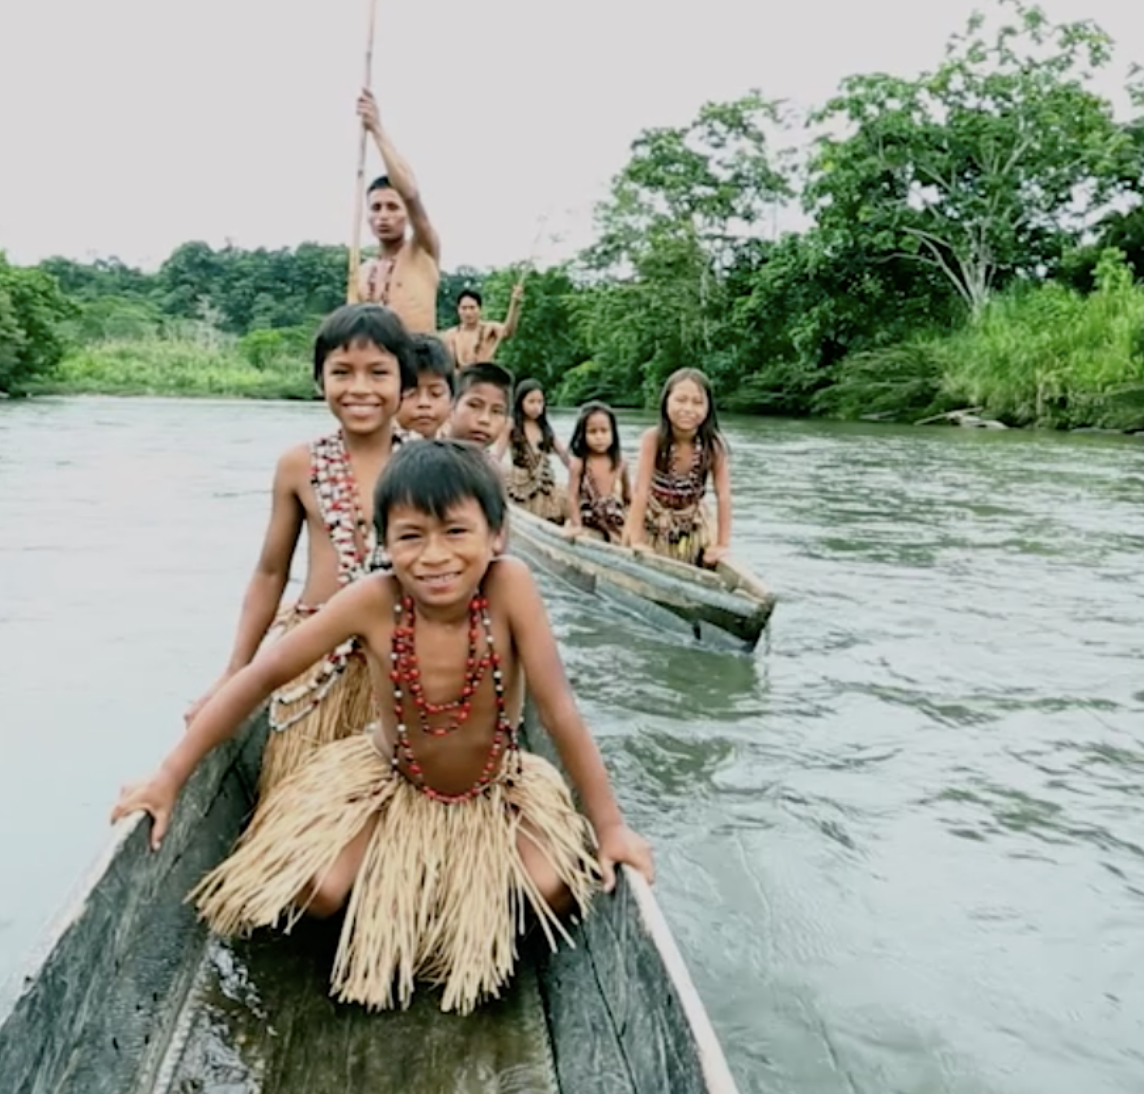 Children in a canoe-type boat on a river